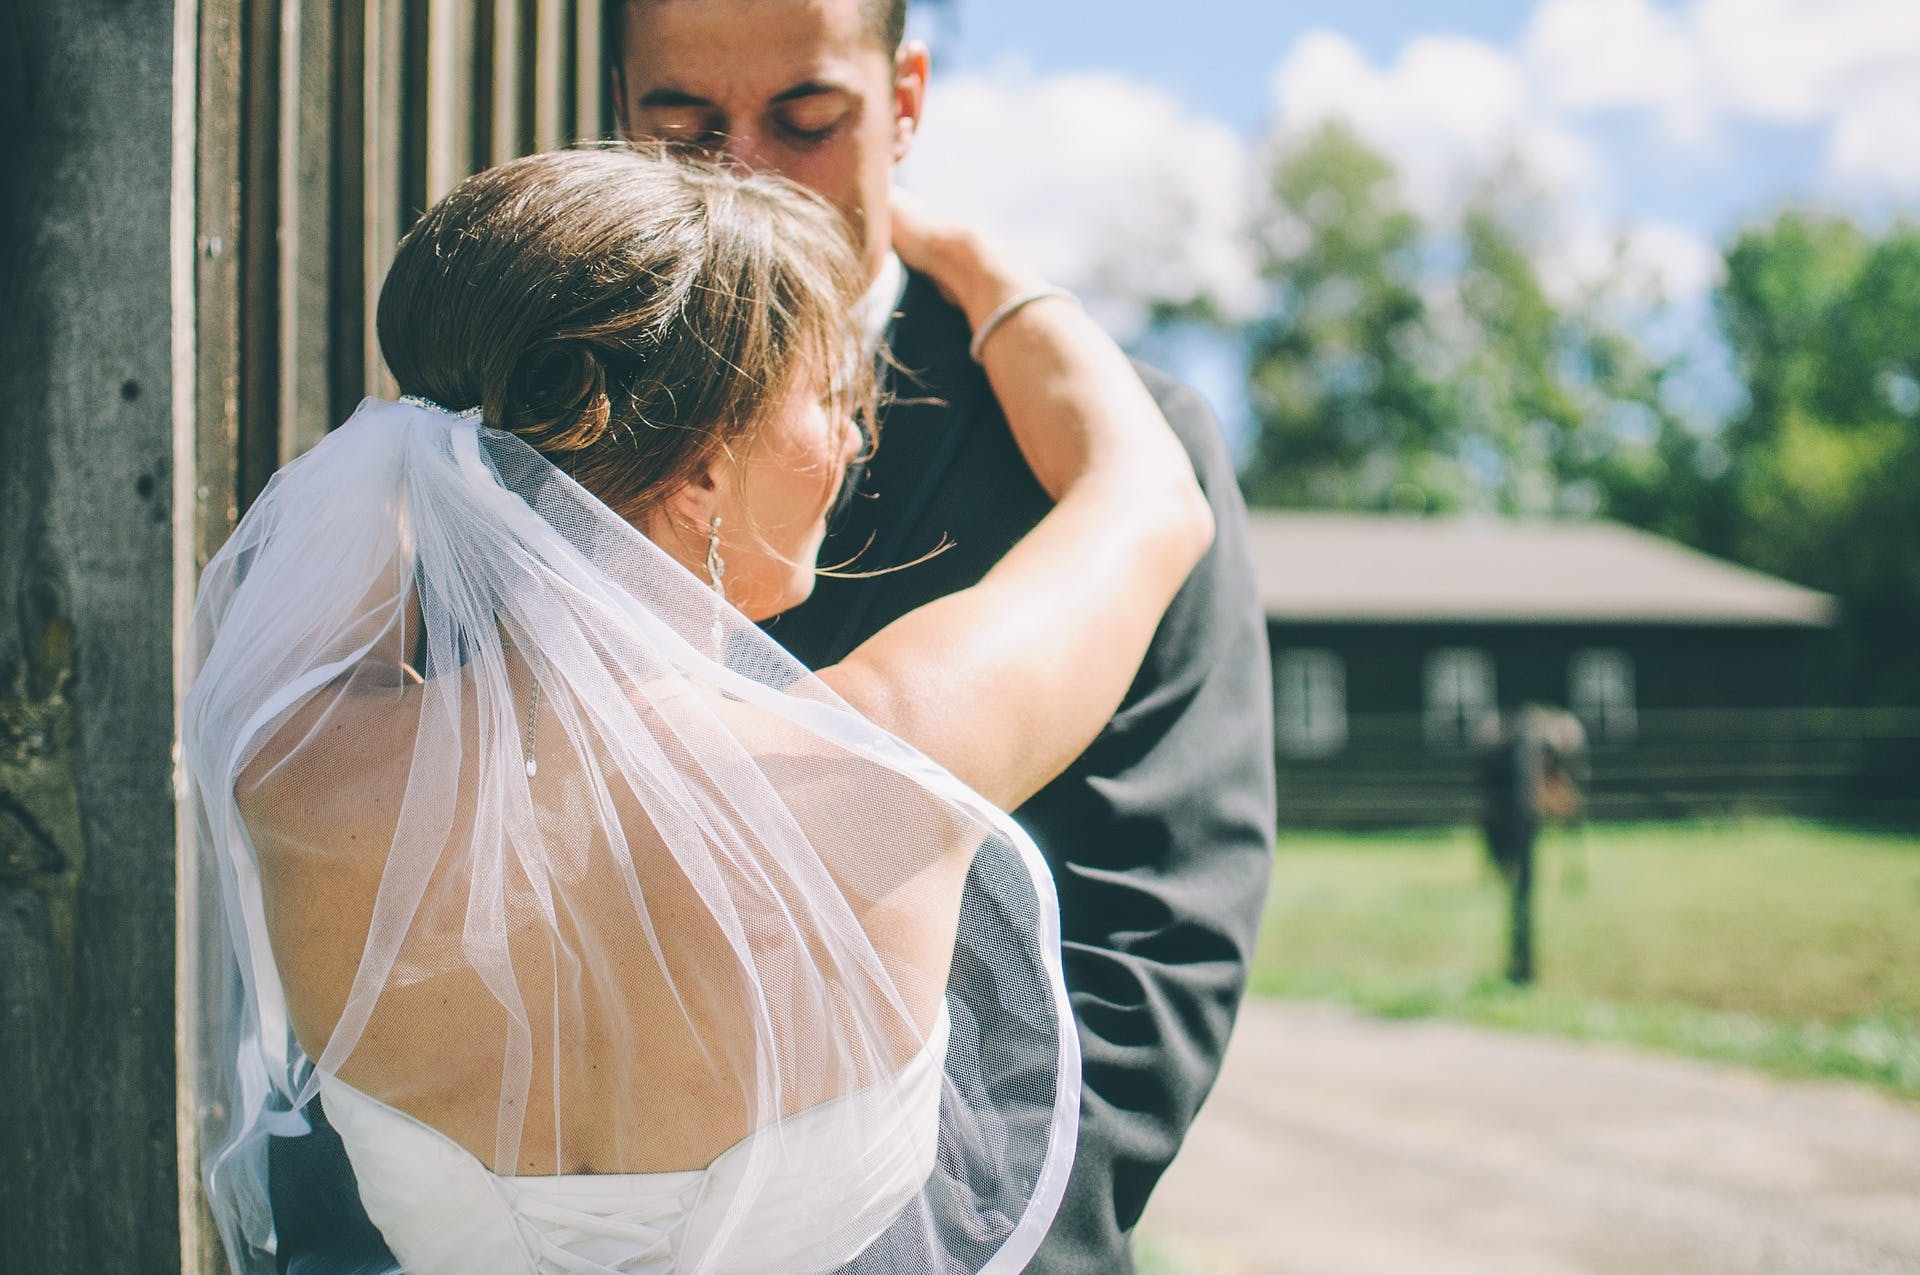 Bride and Groom Hugging Each Other during Daytime